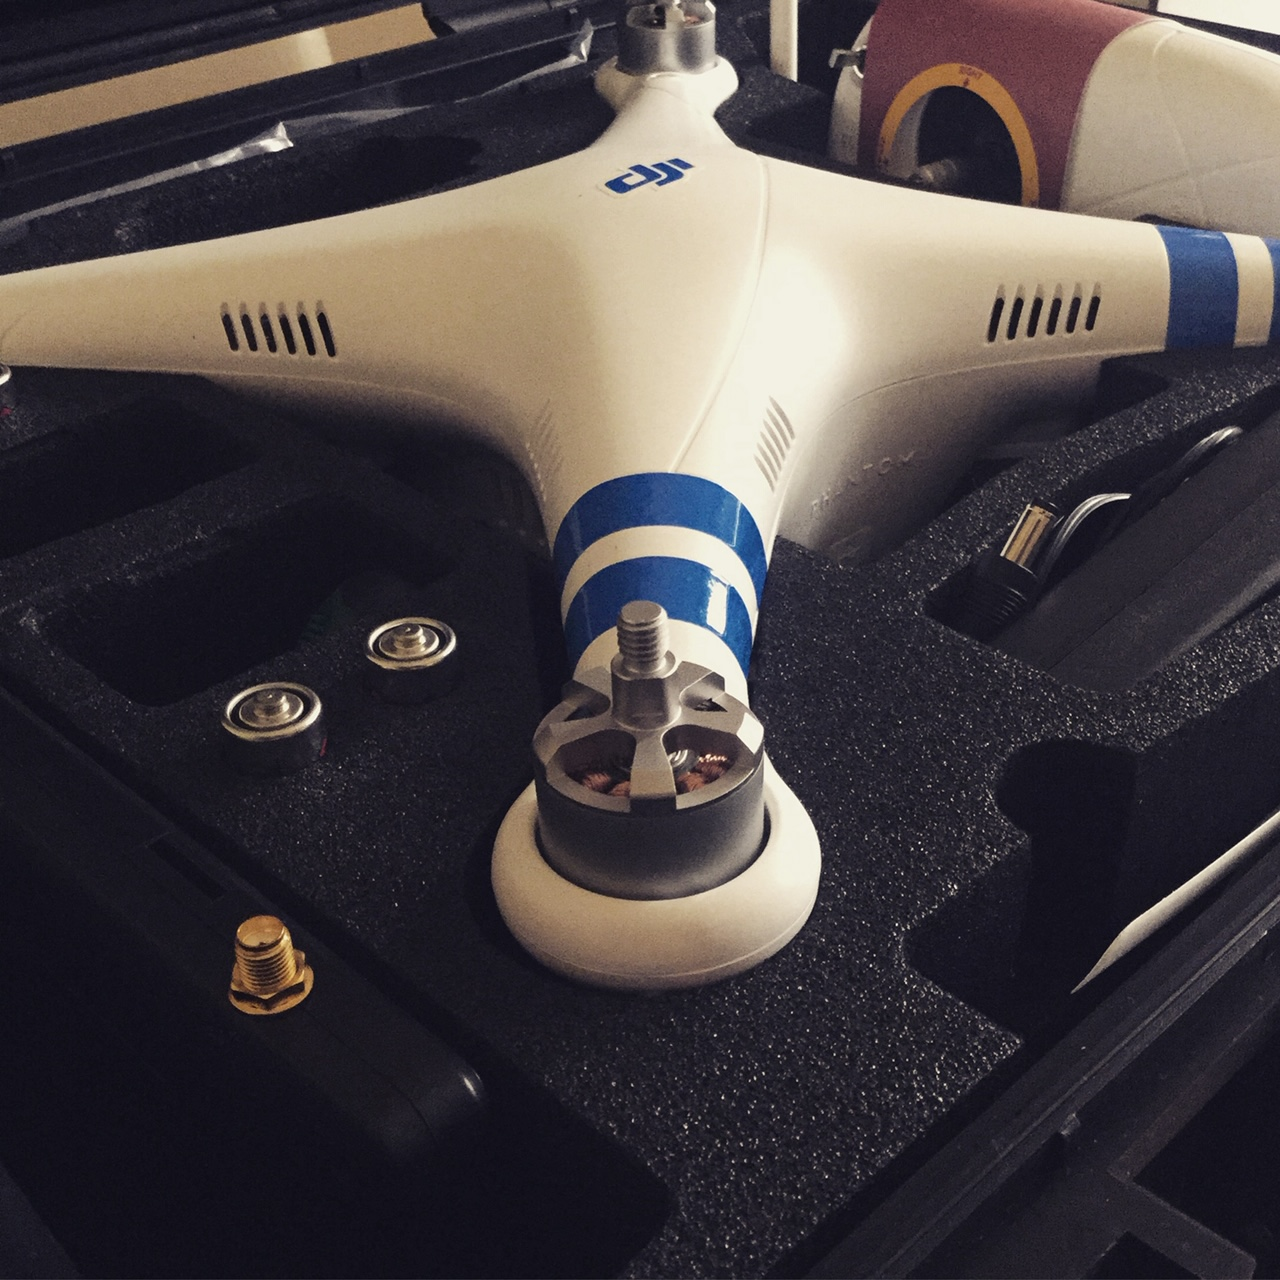 dji phantom in box